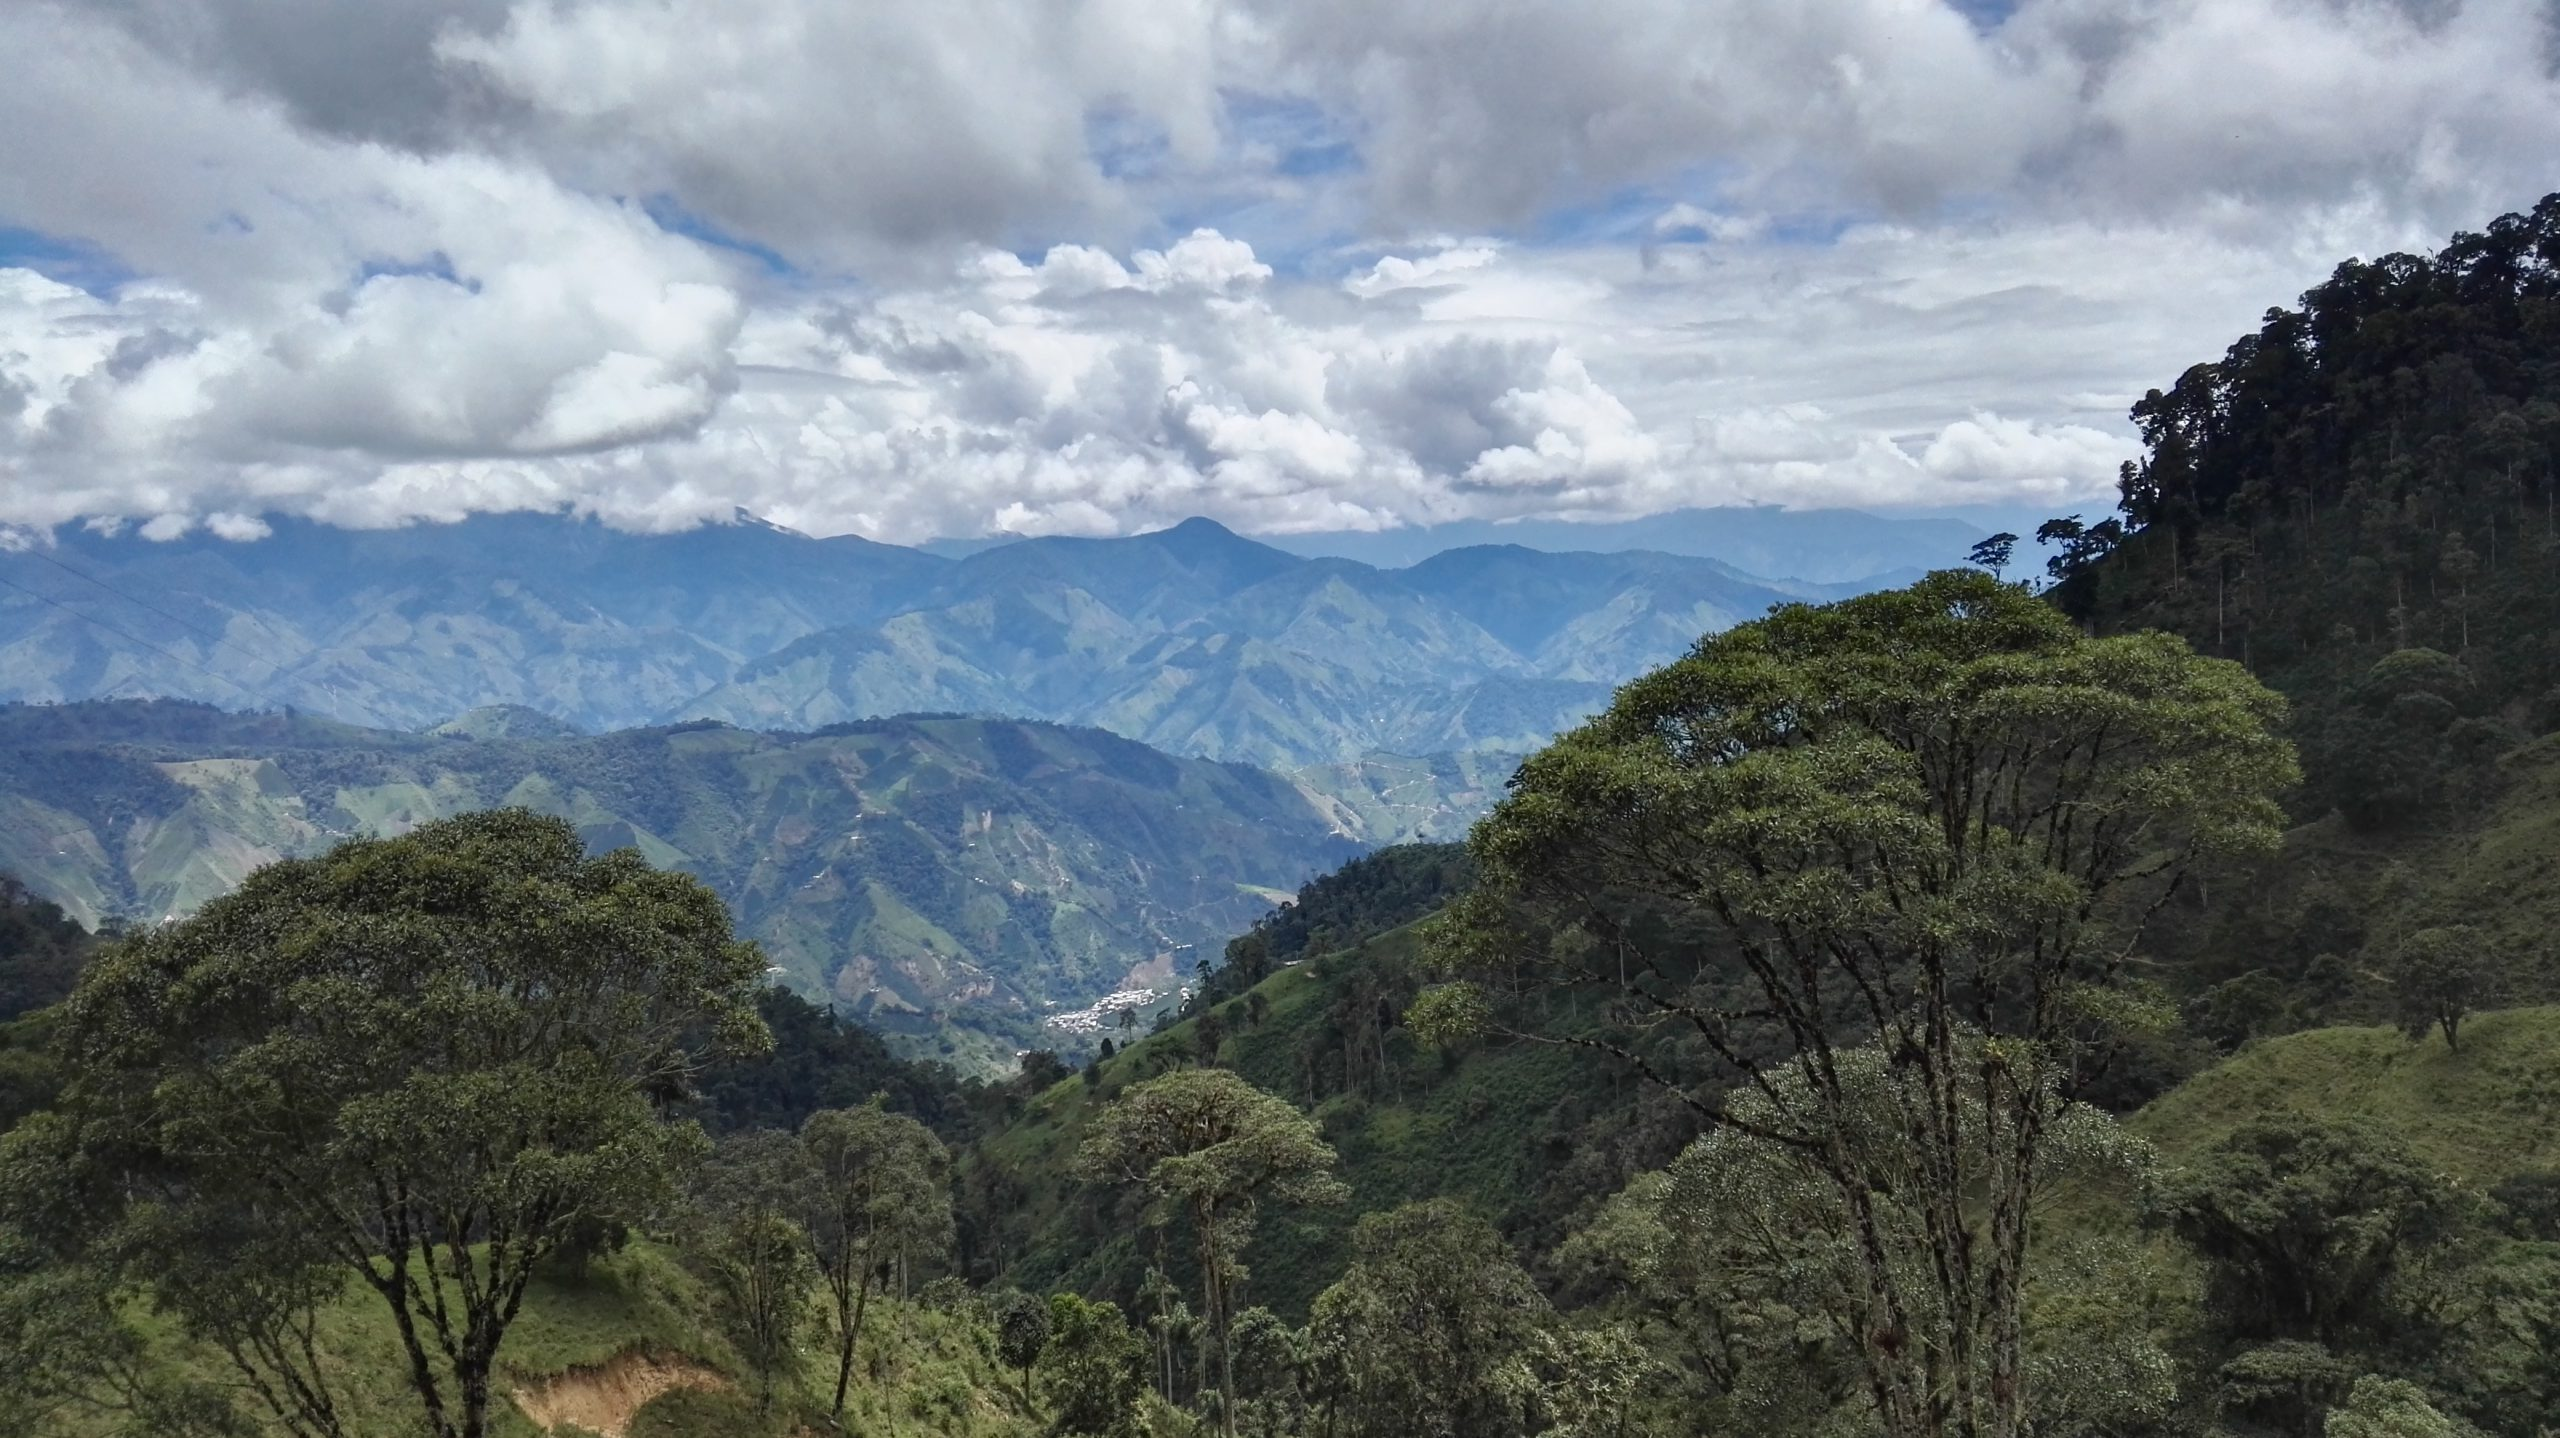 View from a coffee farm